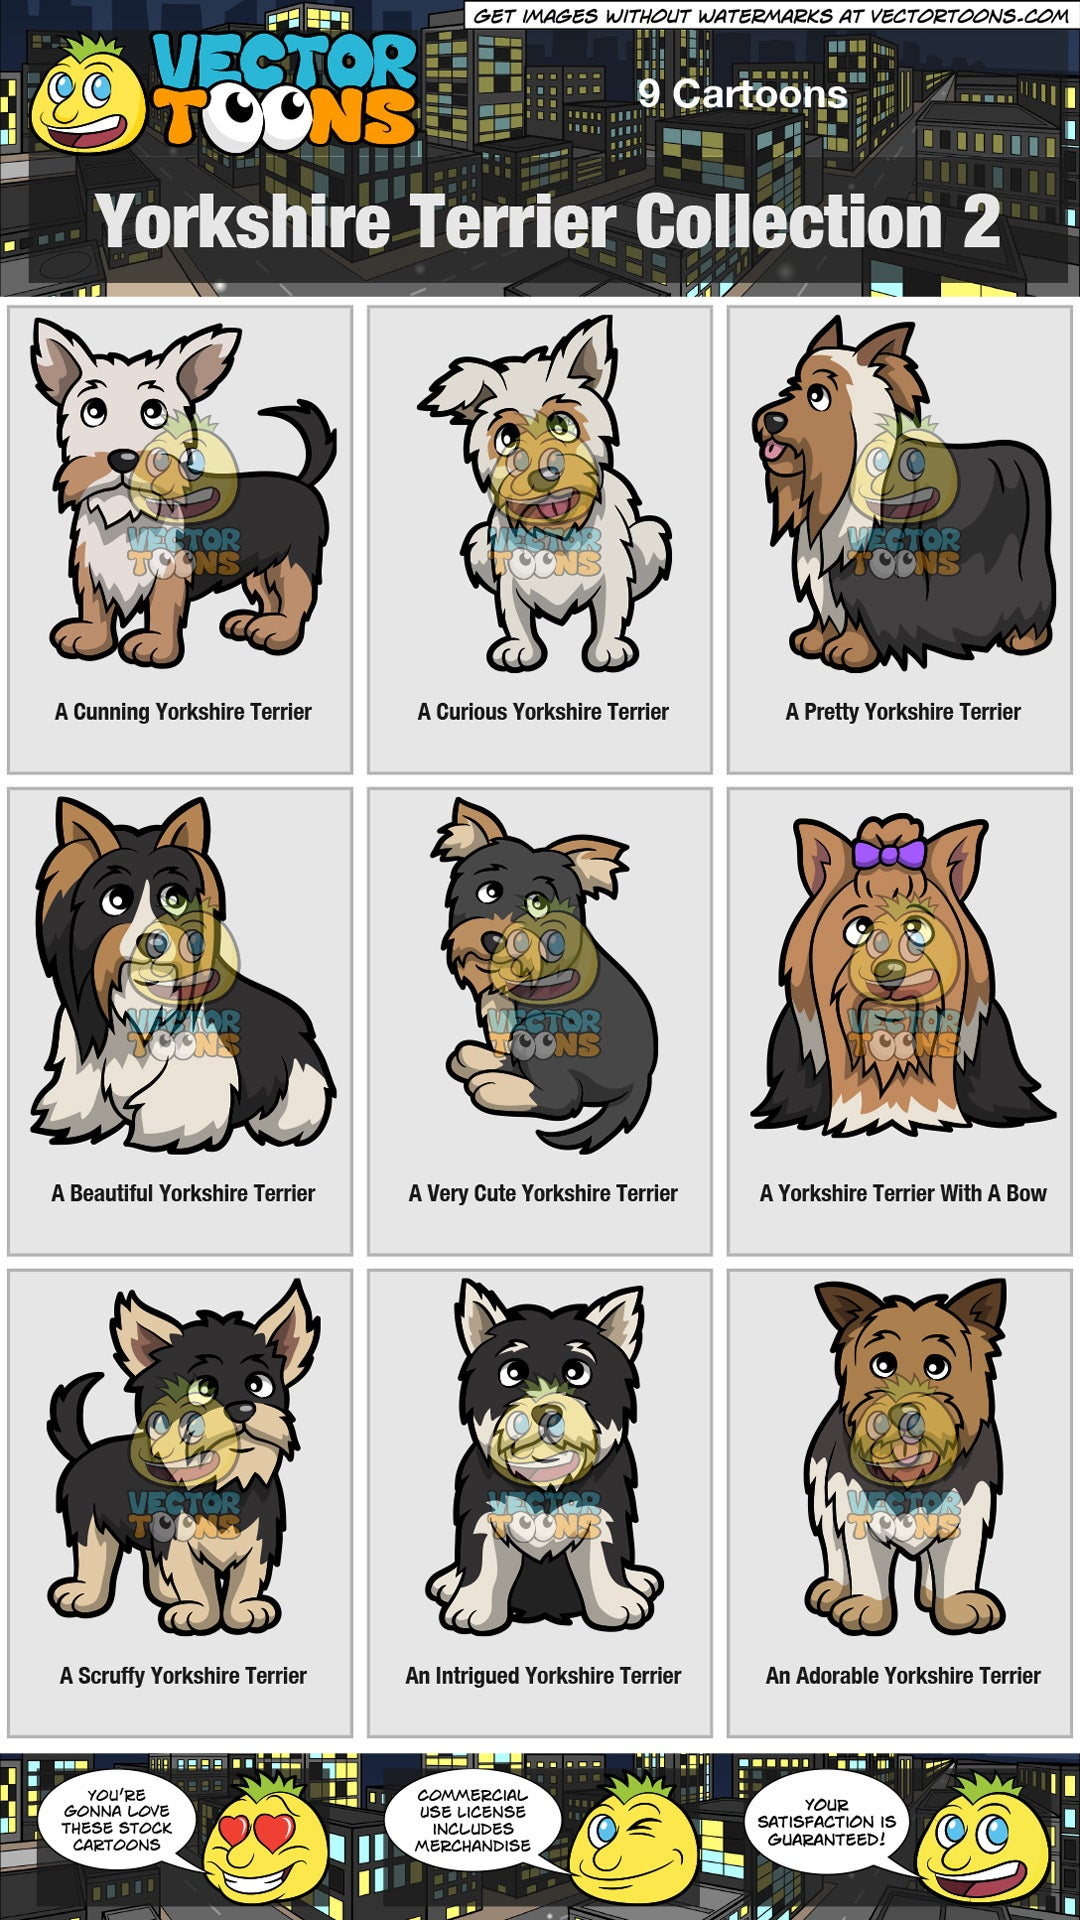 Yorkshire Terrier Collection 2